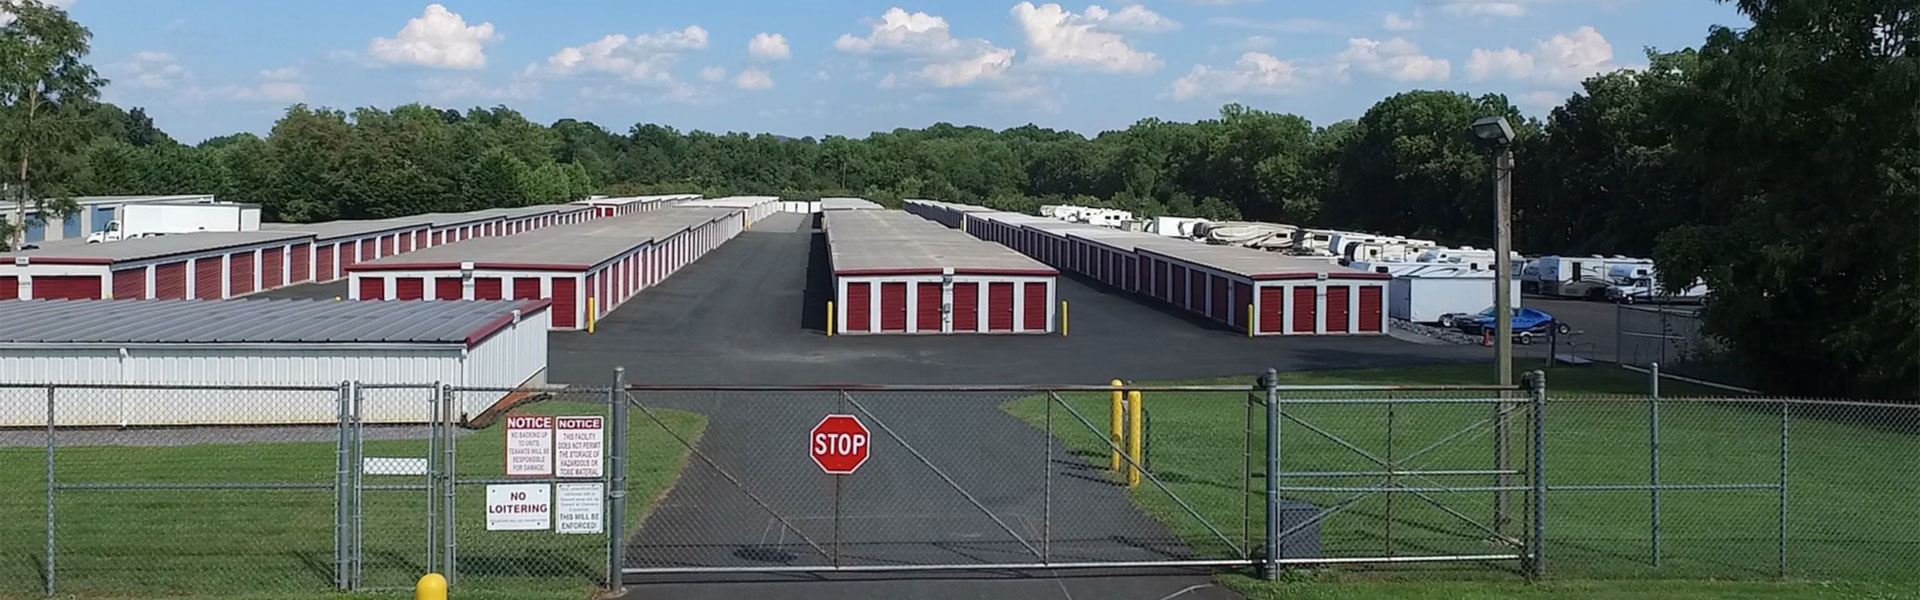 Graves Mill Storage - Self Storage and Mobile Storage in ...